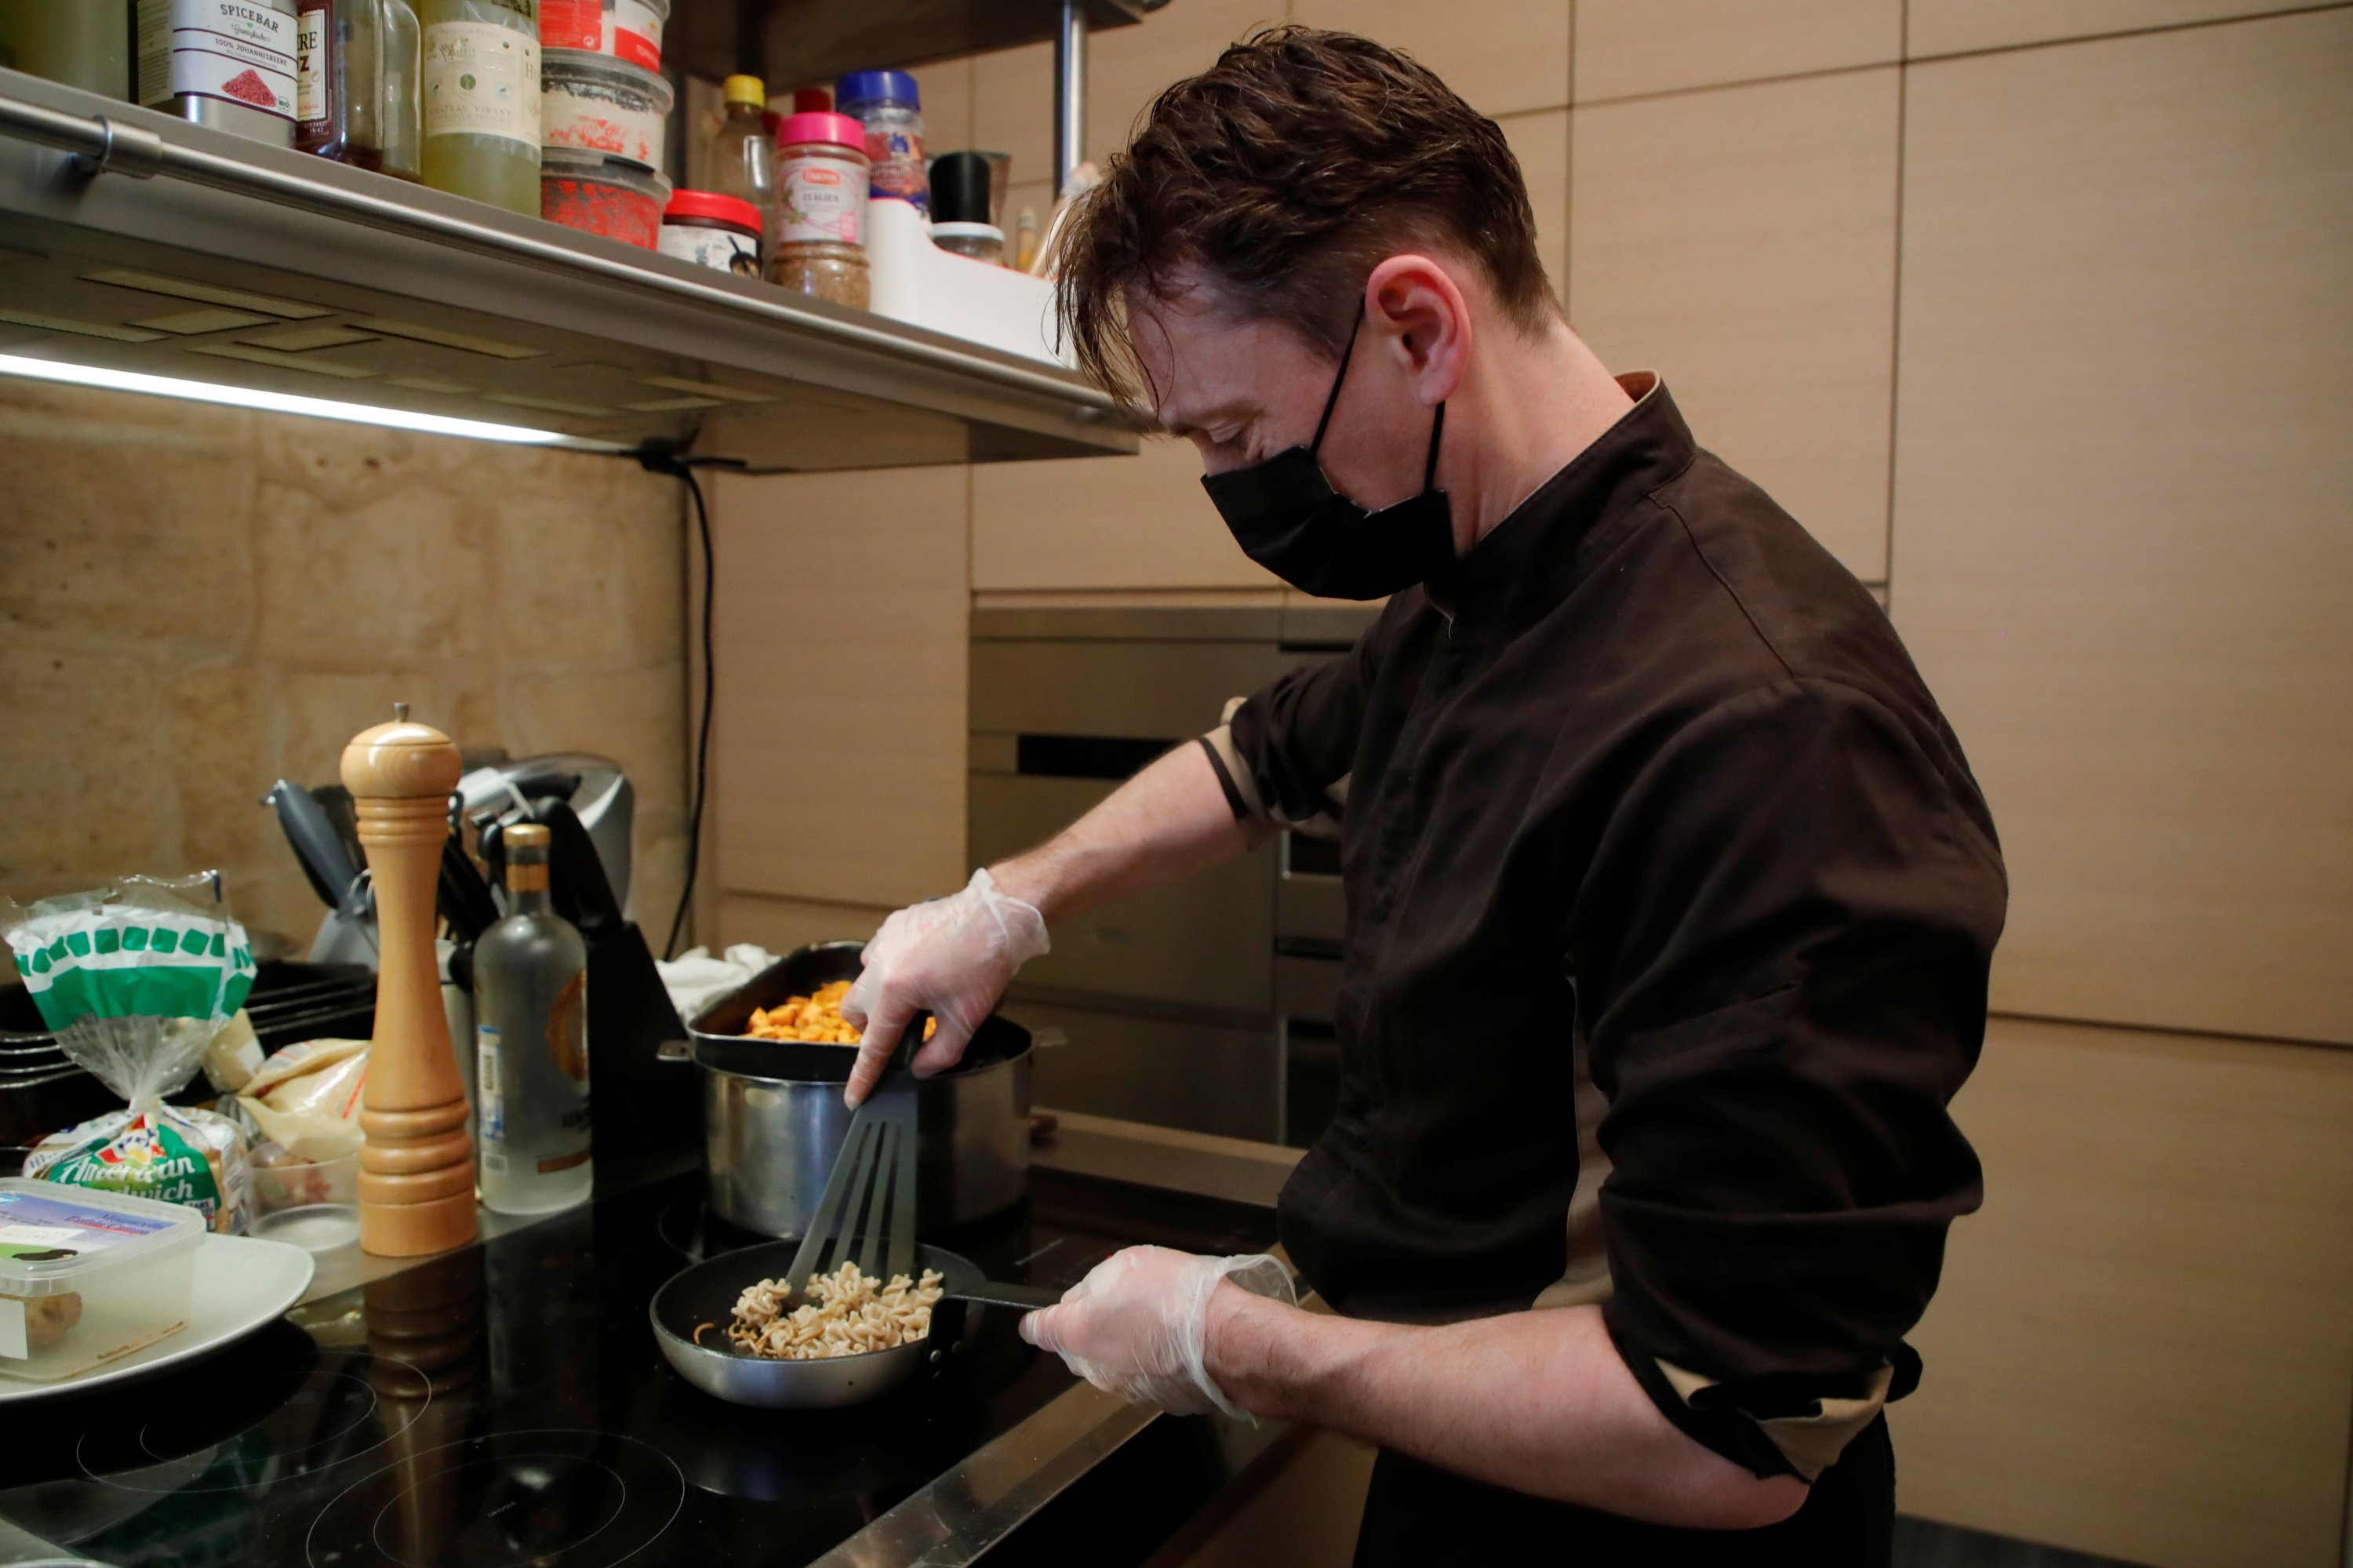 French chef Laurent Veyet prepares a dish with fried mealworms in his restaurant Inoveat serving only insect-based food in Paris, France, May 12, 2021. (Reuters Photo)